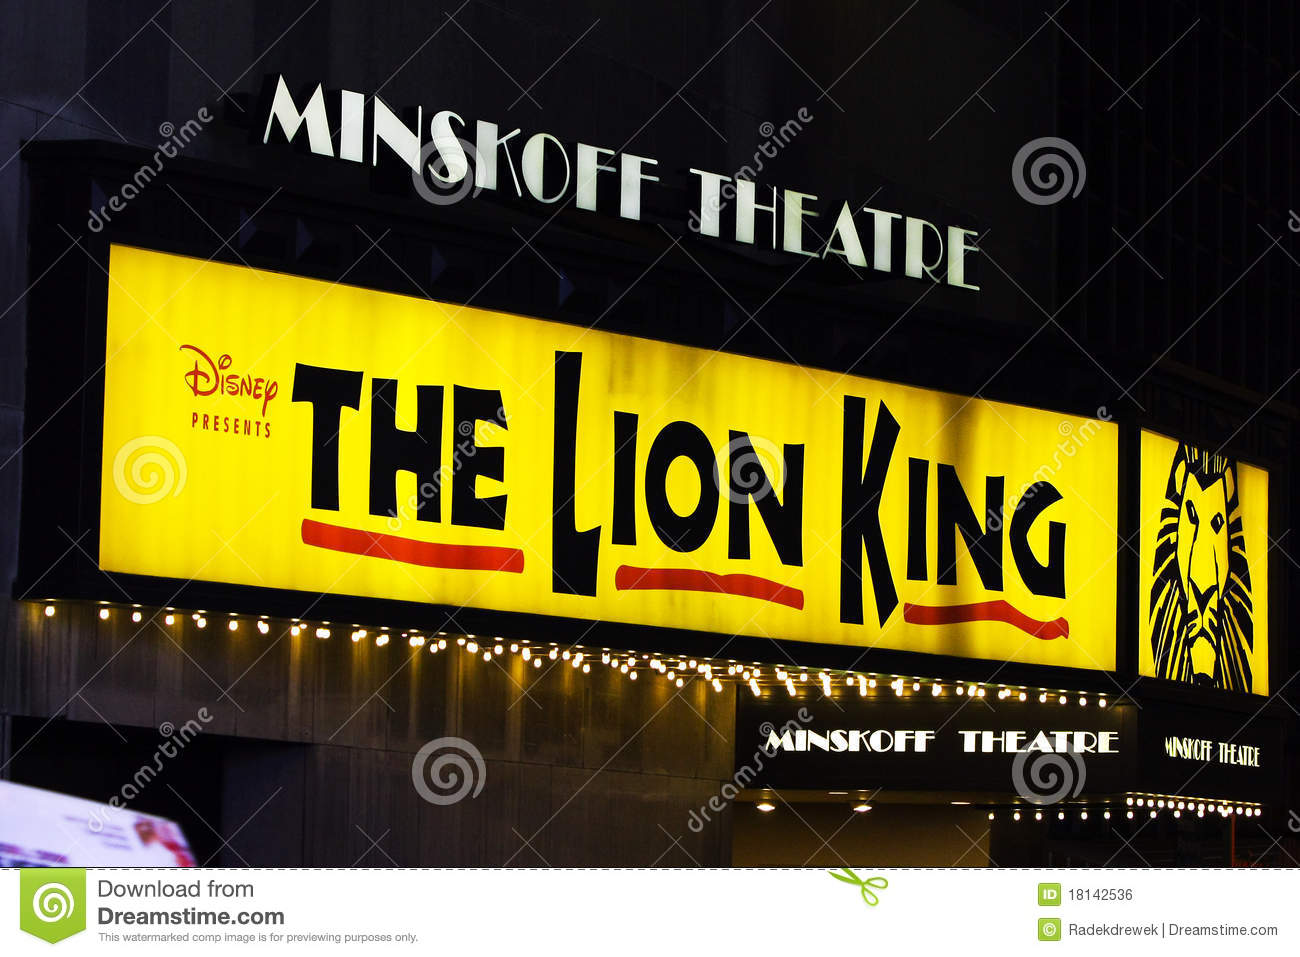 the lion king on broadway in nyc